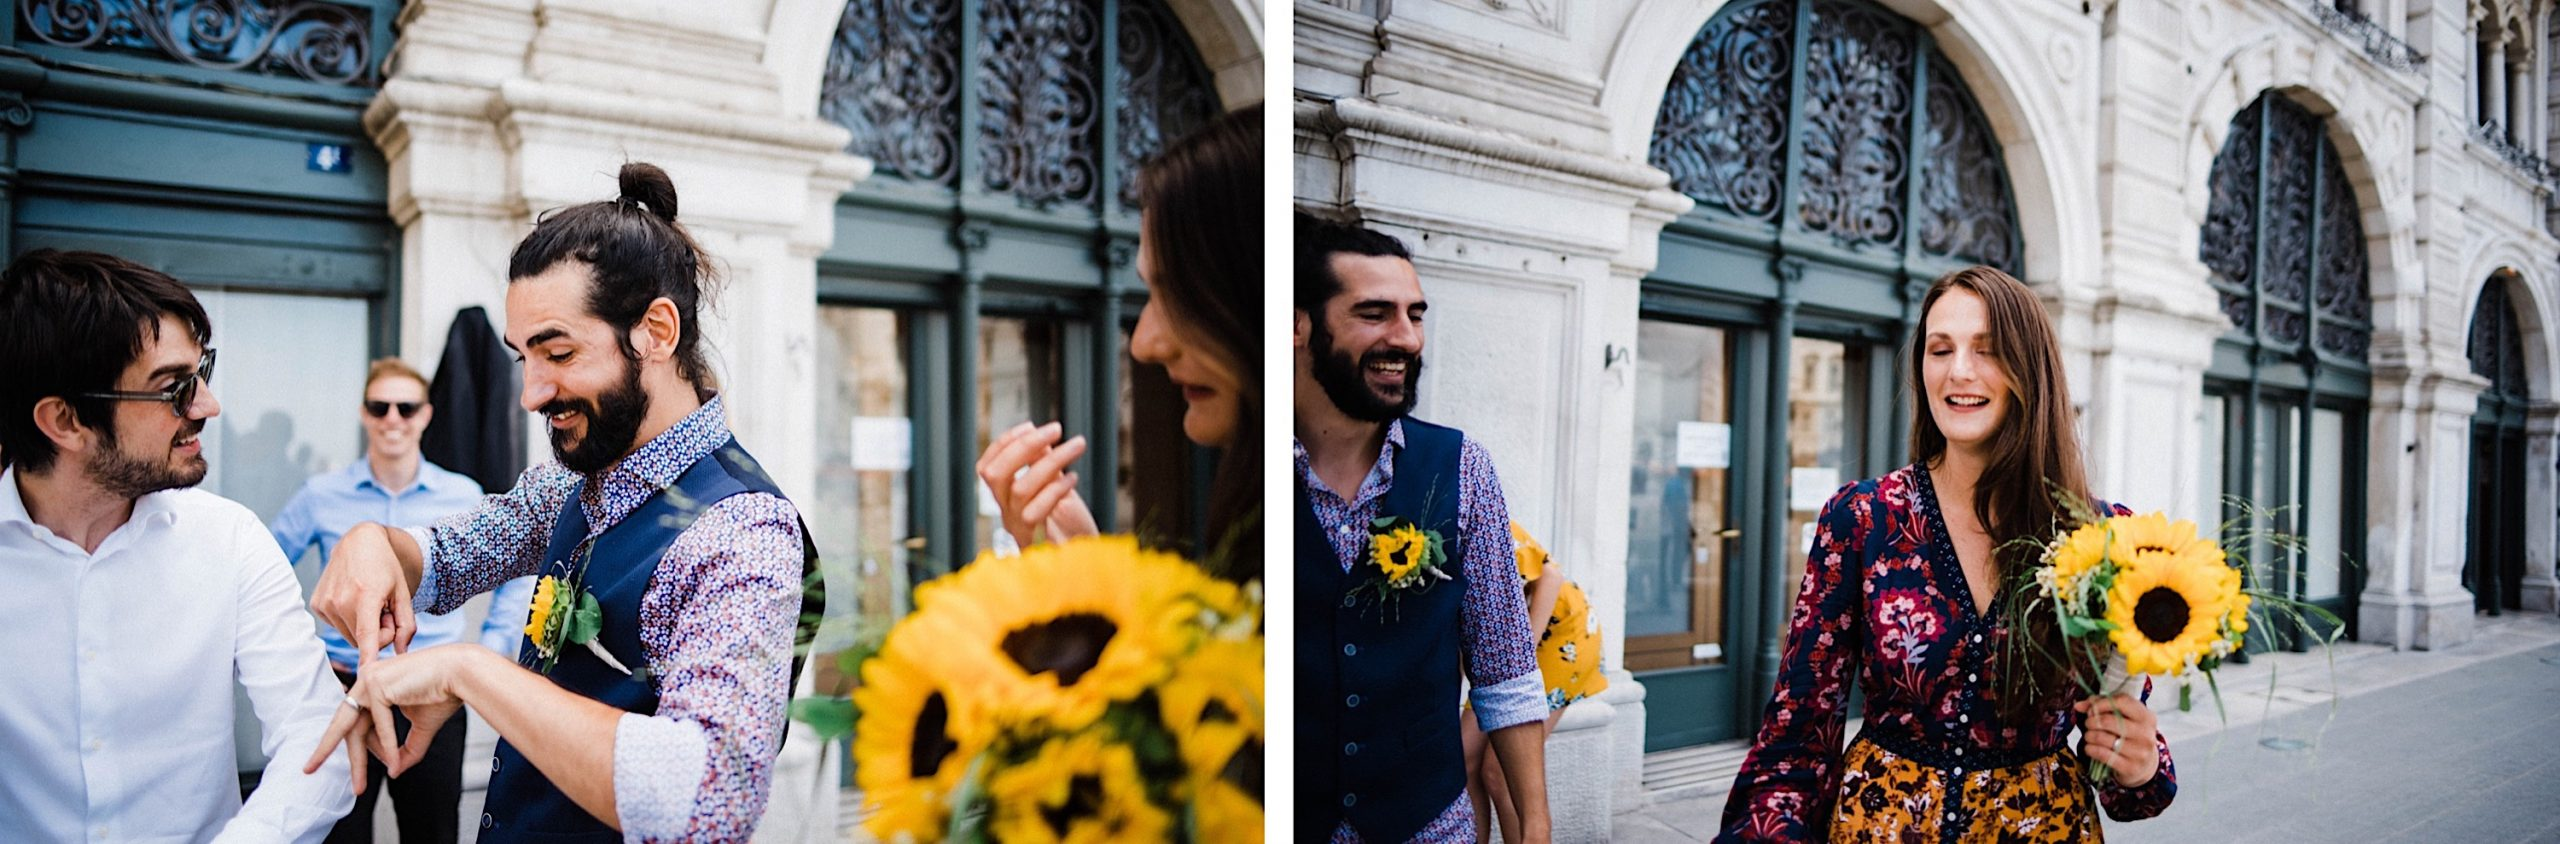 Two photos of newlyweds celebrating after their elopement ceremony in Trieste.